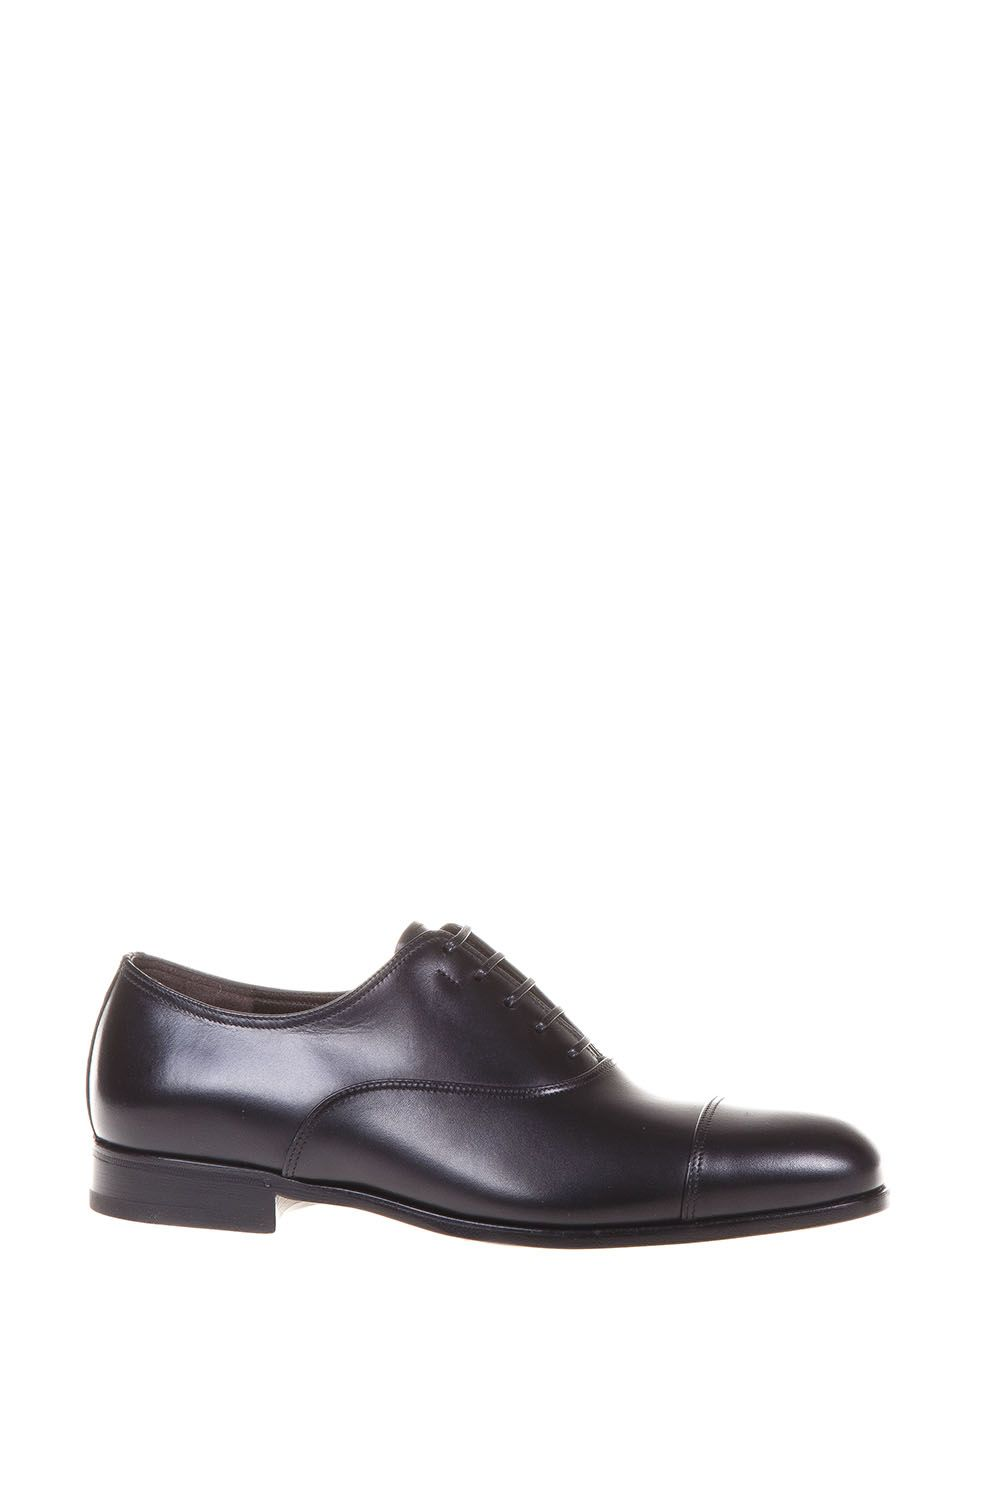 Salvatore Ferragamo Smooth Letaher Lace-up Shoes